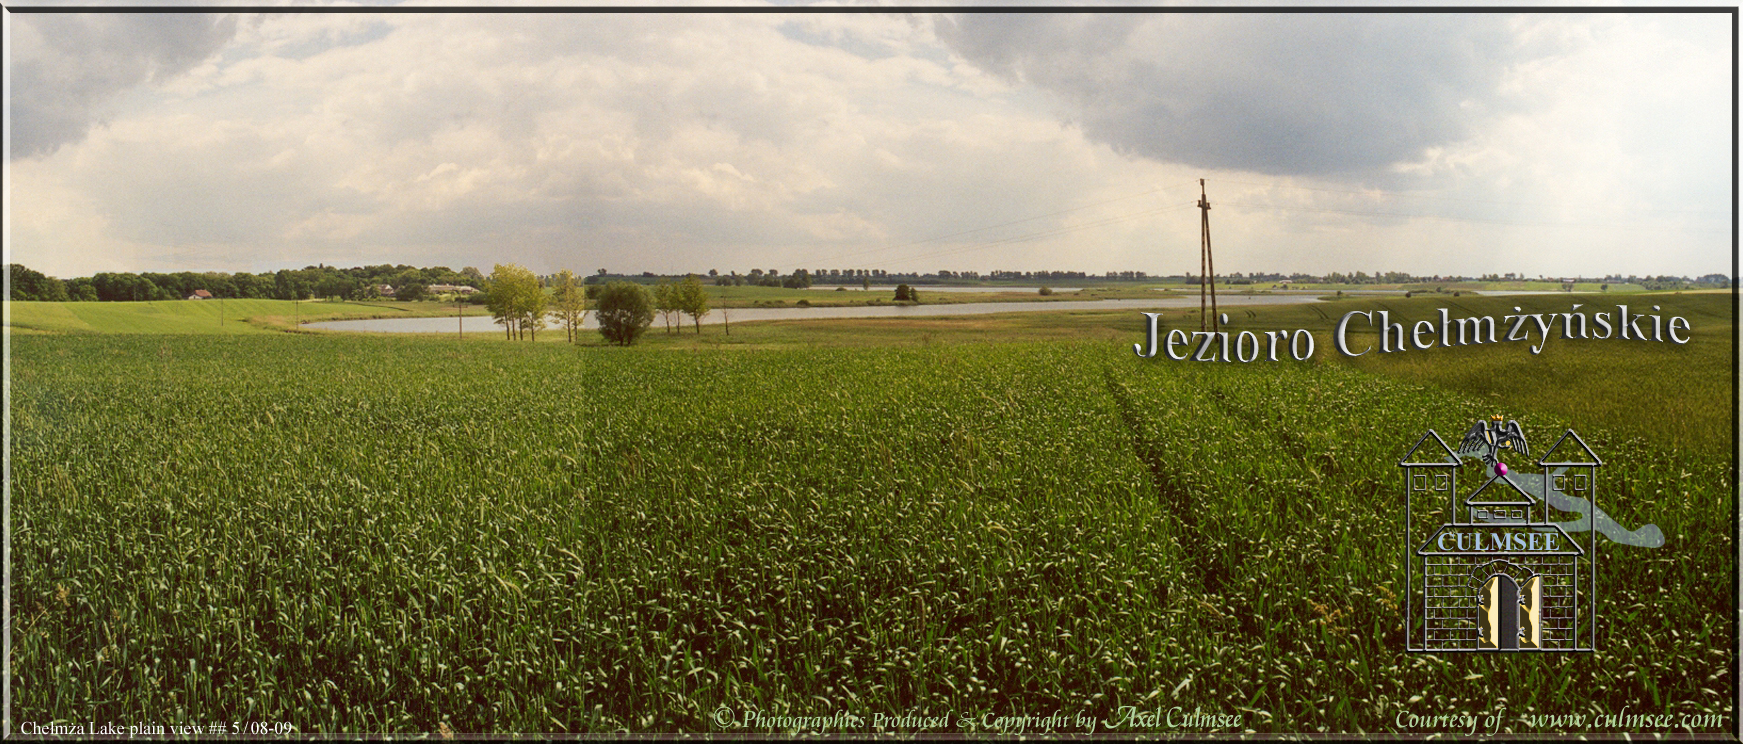 Chelmza Jezioro Chelmzynskie 2001 plain fields view